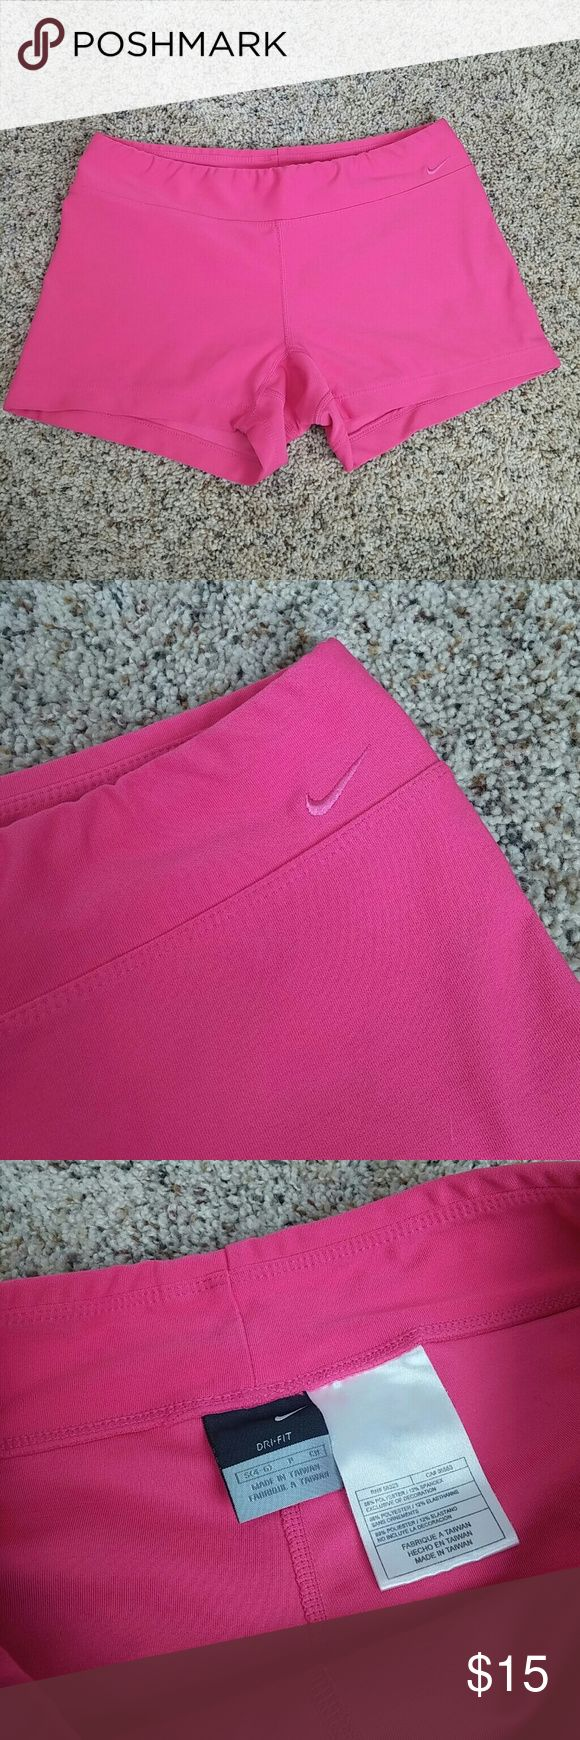 Nike pink shorts dri-fit In excellent condition. Pink fitted shorts. Nike Shorts